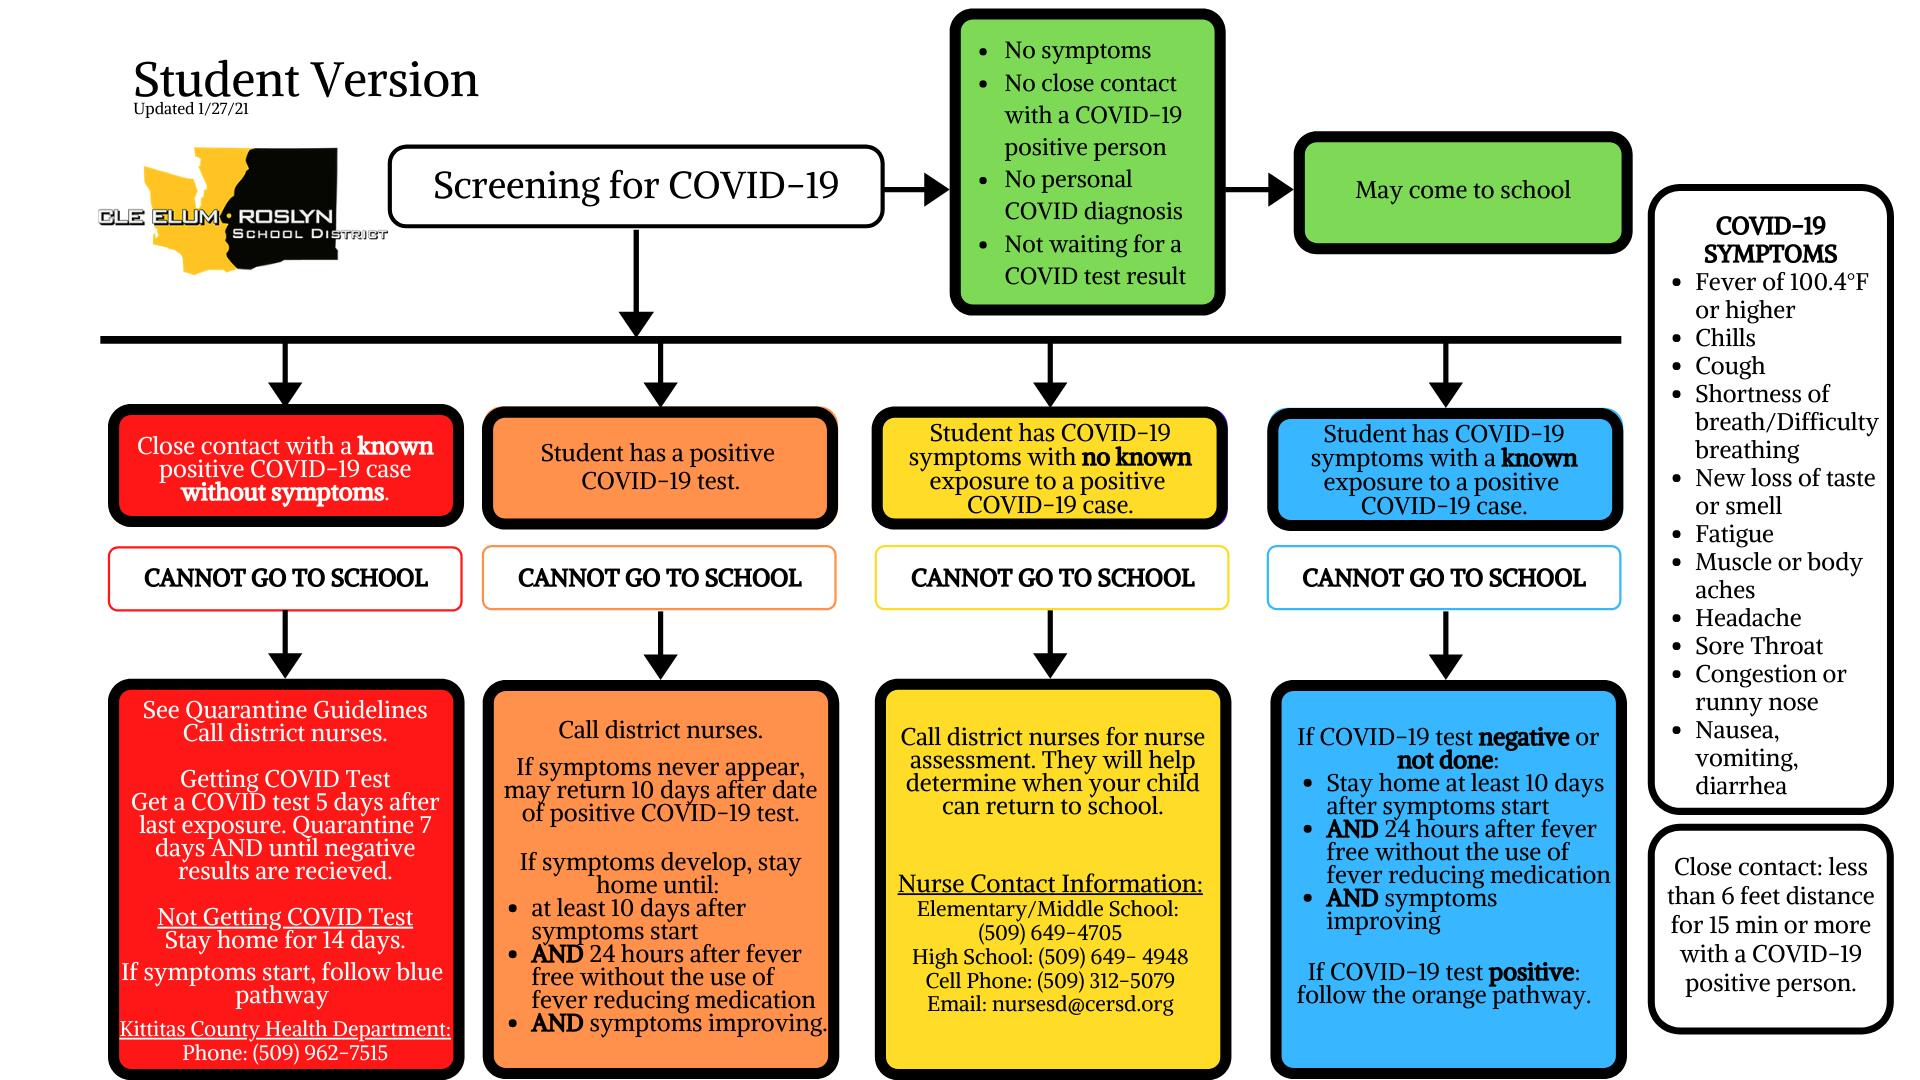 Student Version Updated 1/27/21 Screening for COVID-19 - this chart walks through what to do if you have no symptoms, close contact with a known positive case, student has had a positive test, students has COVID symptoms with no known exposure, student has symptoms with a known exposure. In most of the cases, do not go to school if you have symptoms or have been in contact with someone who has symptoms or tested positive.